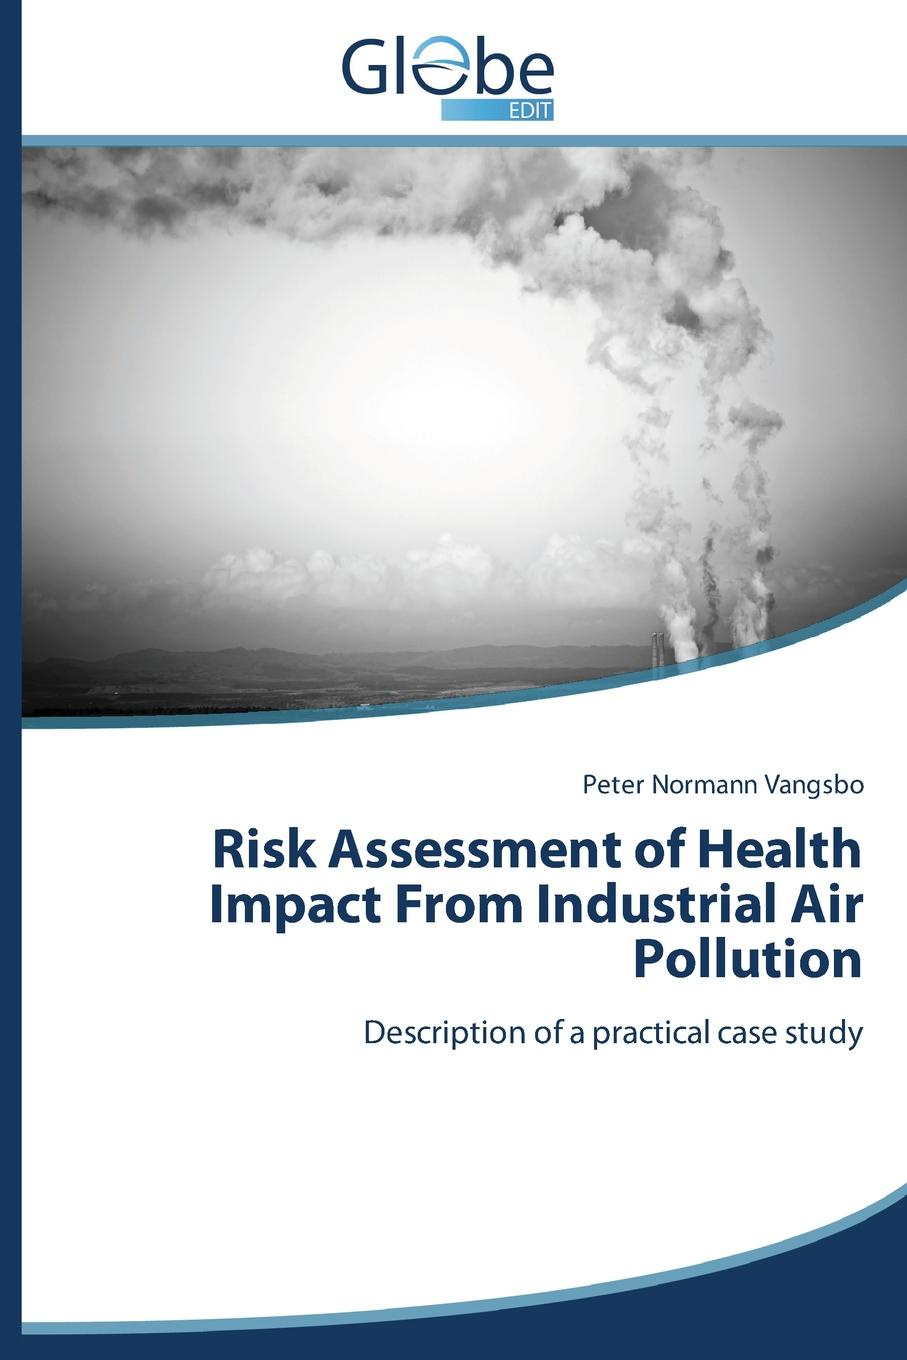 Vangsbo Peter Normann Risk Assessment of Health Impact From Industrial Air Pollution kapustka lawrence a environmental risk assessment and management from a landscape perspective